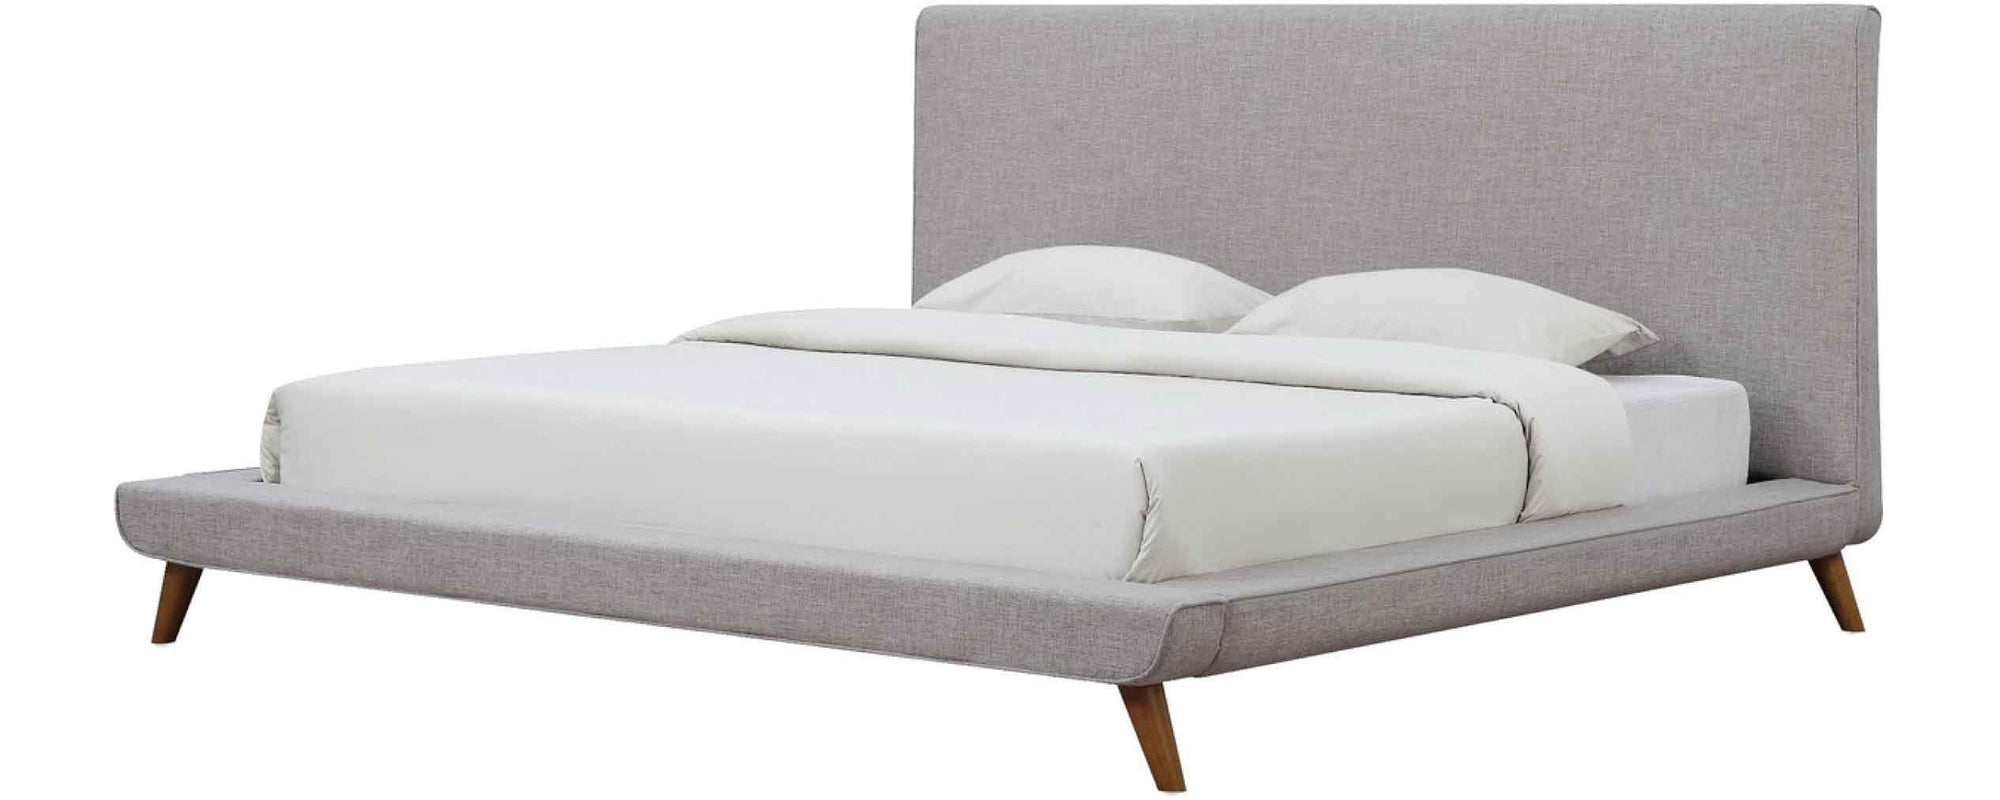 Beds Starting at $139